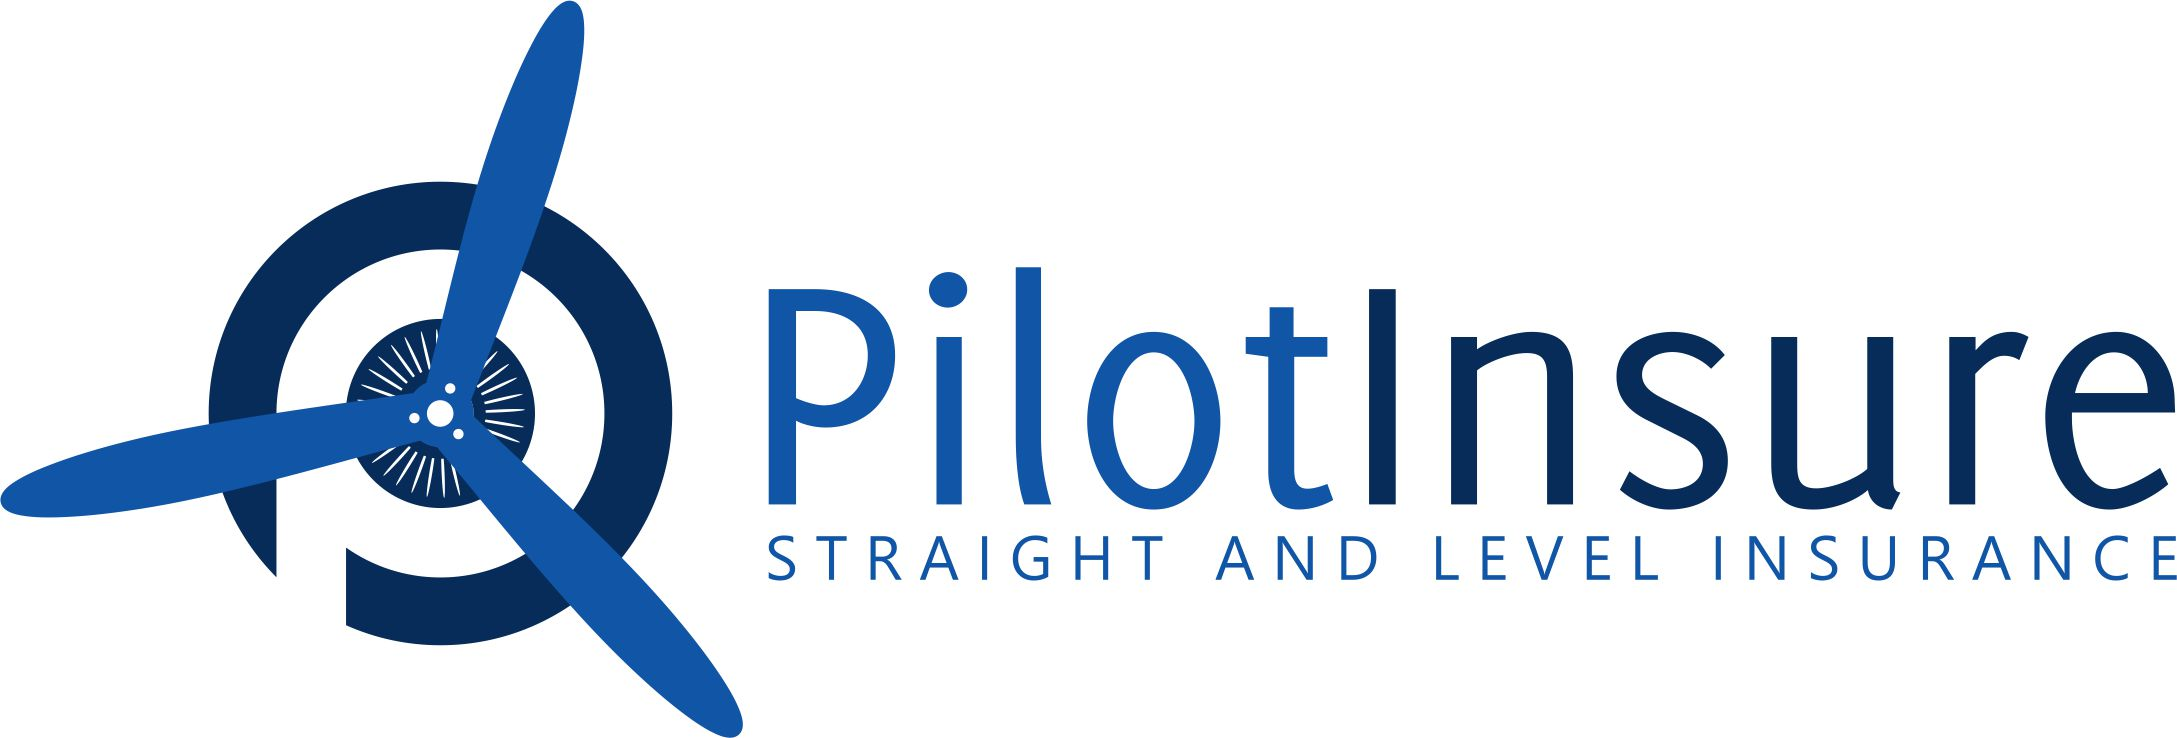 Pilotinsure logo - PNG version